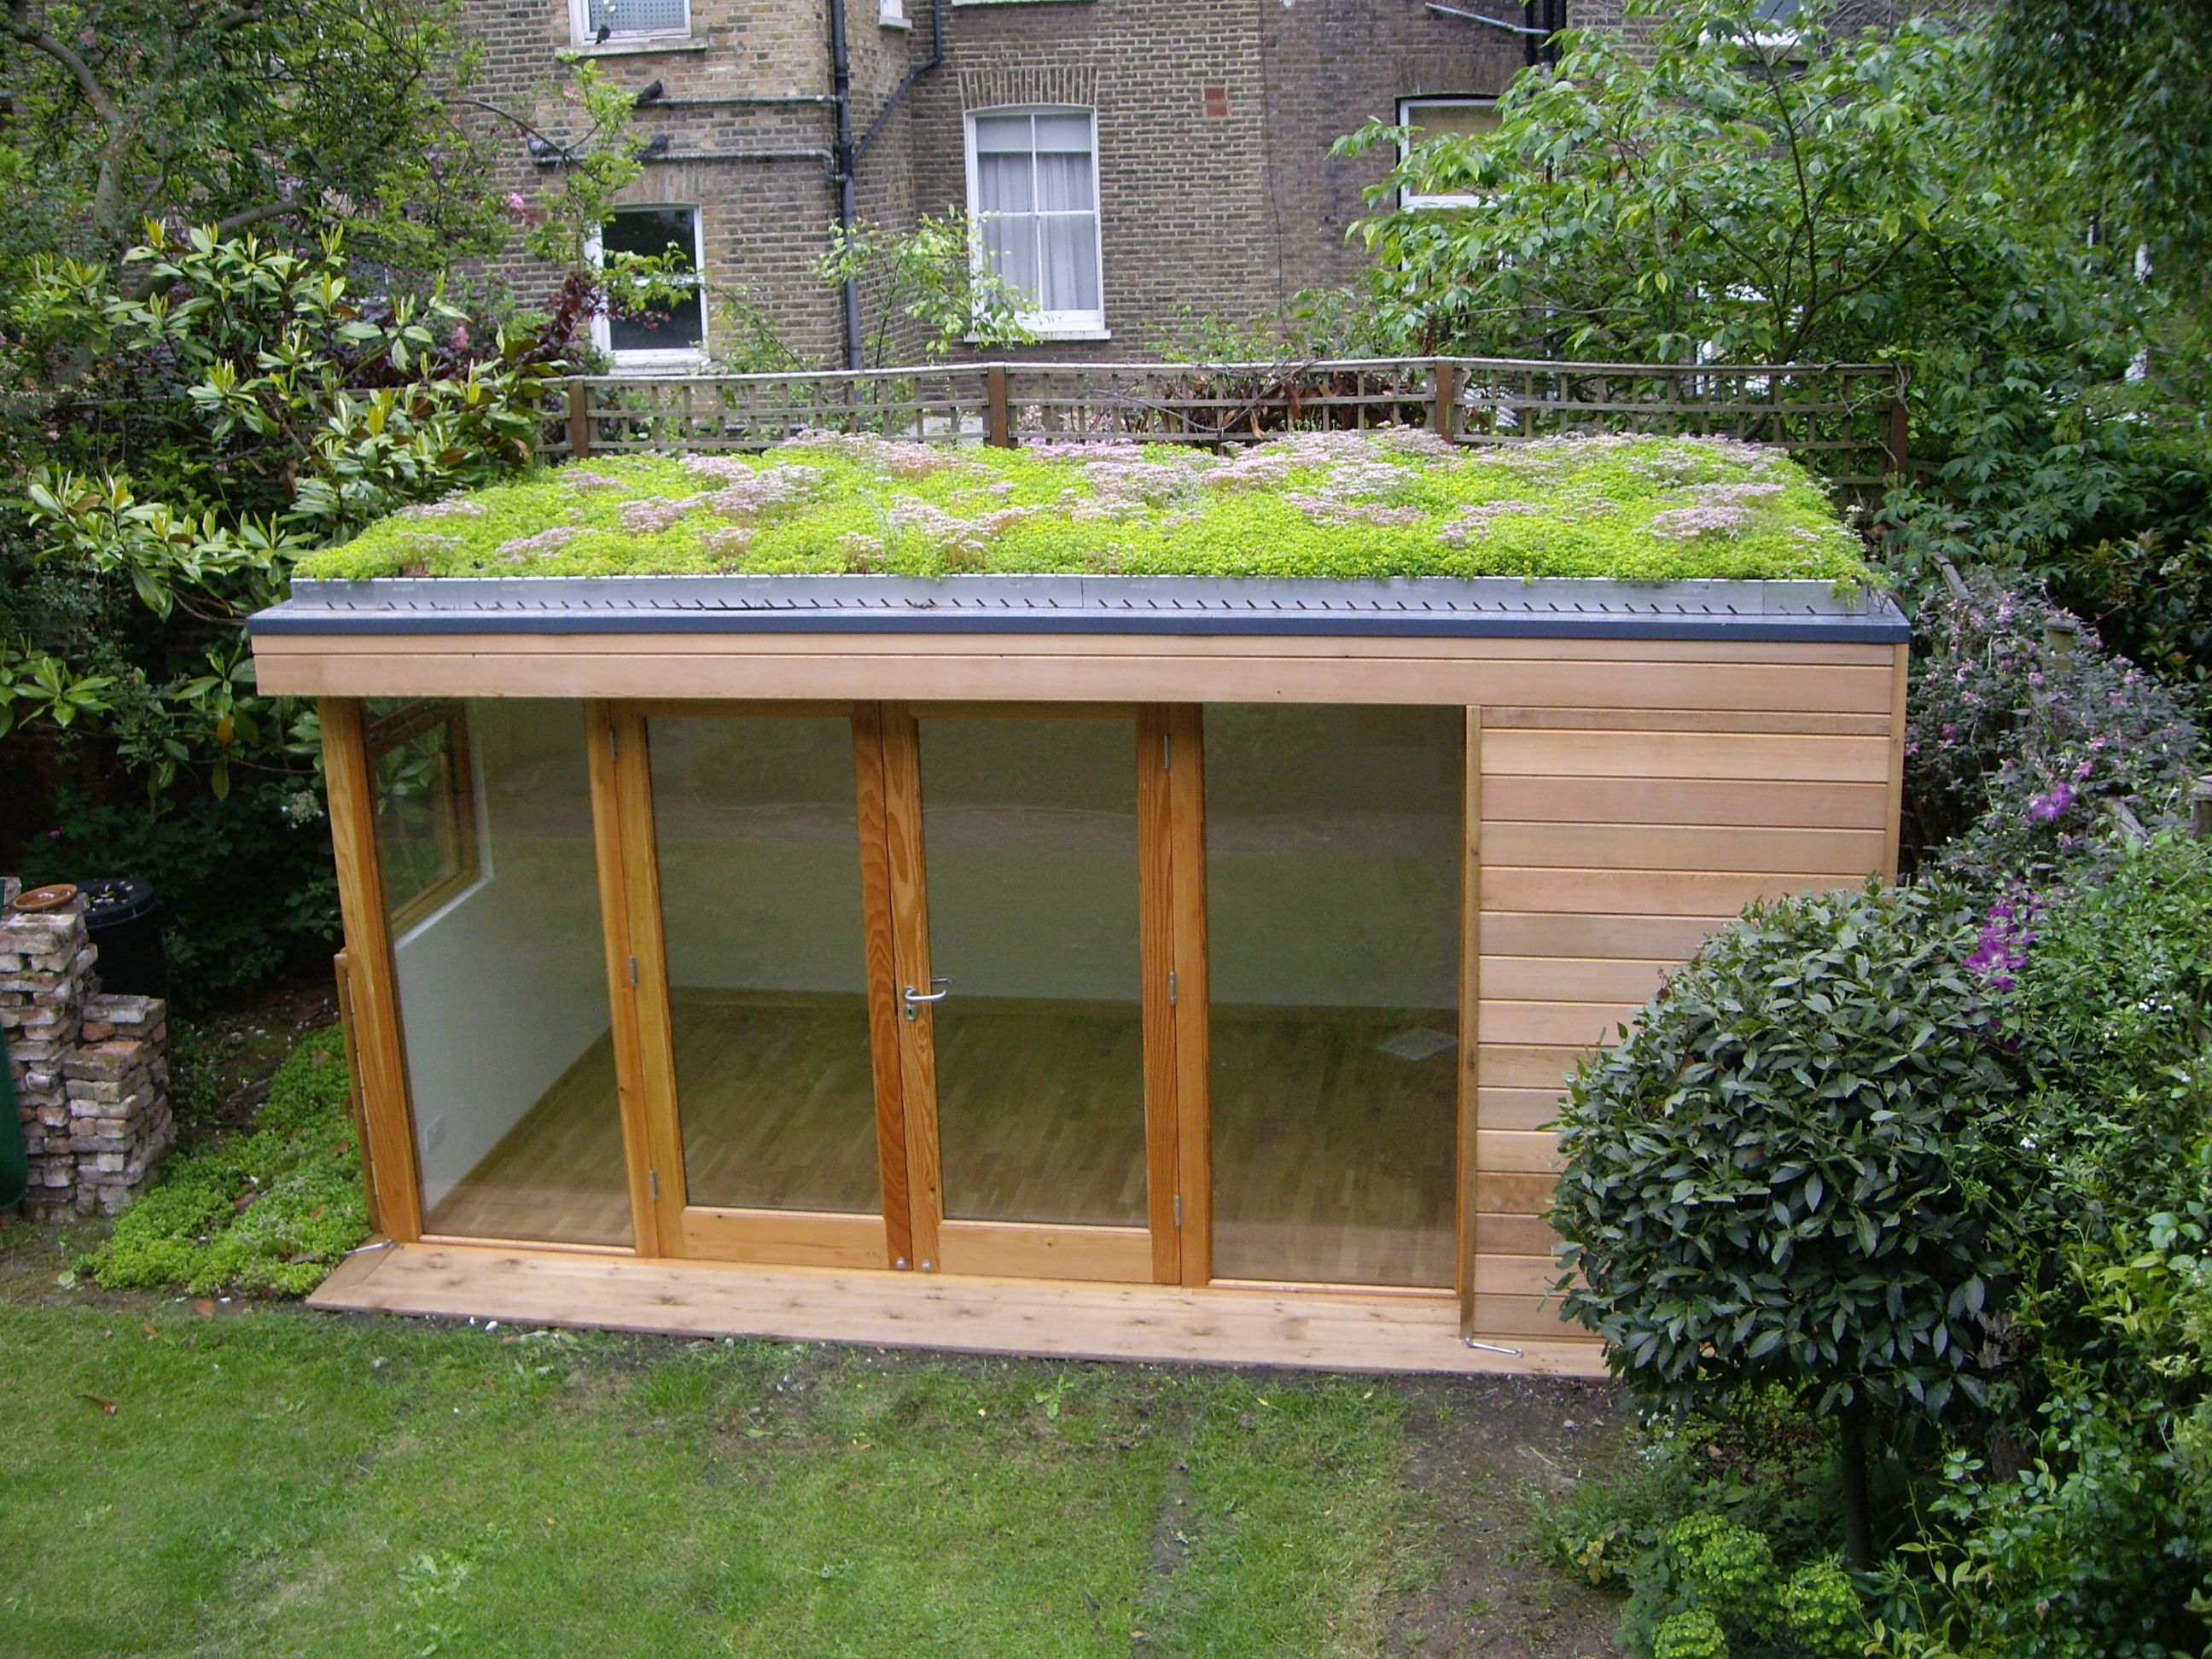 Environment sedum roof energy consumption and green roofs for Interesting garden buildings